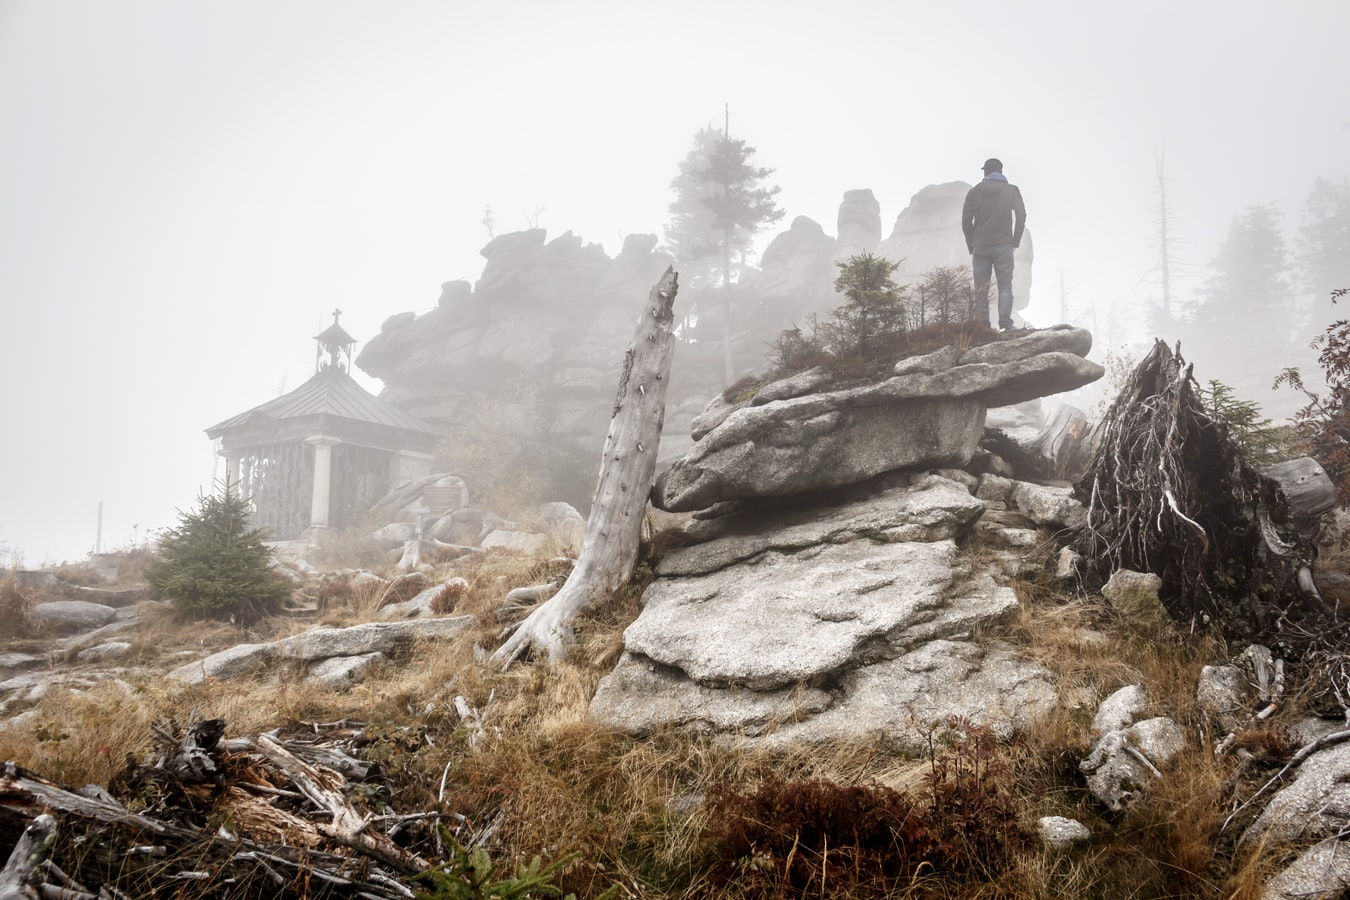 Man standing on rocks peering beyond a veil of fog to the structure and forest behind it